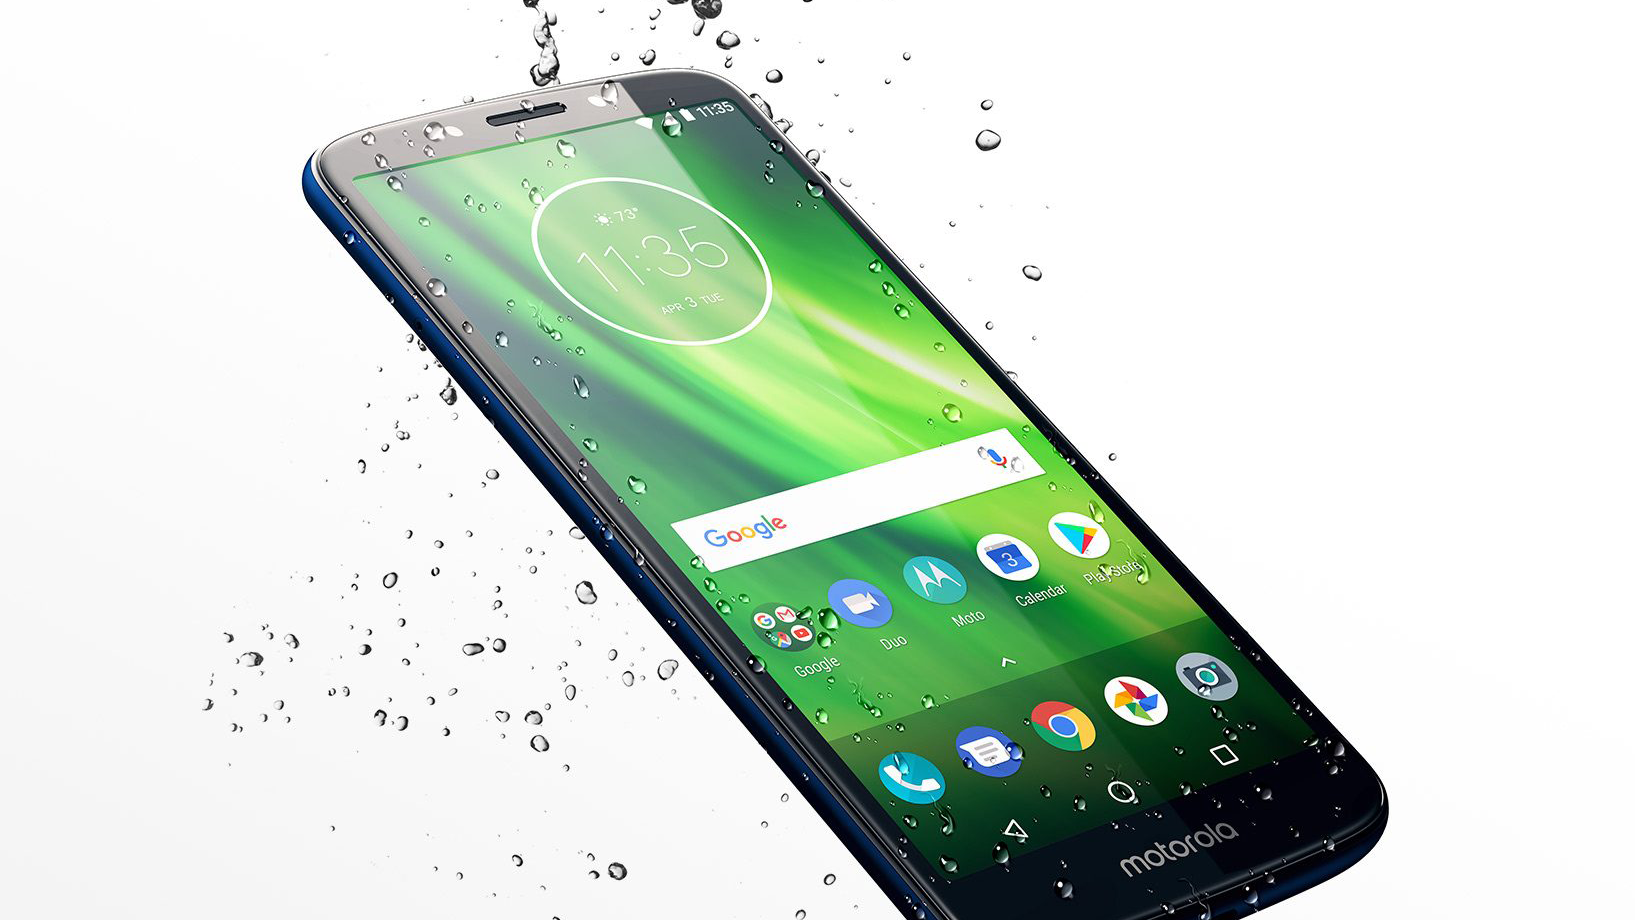 Get an unlocked Prime Exclusive Moto G6 Play for $150 ($40 off) on Amazon